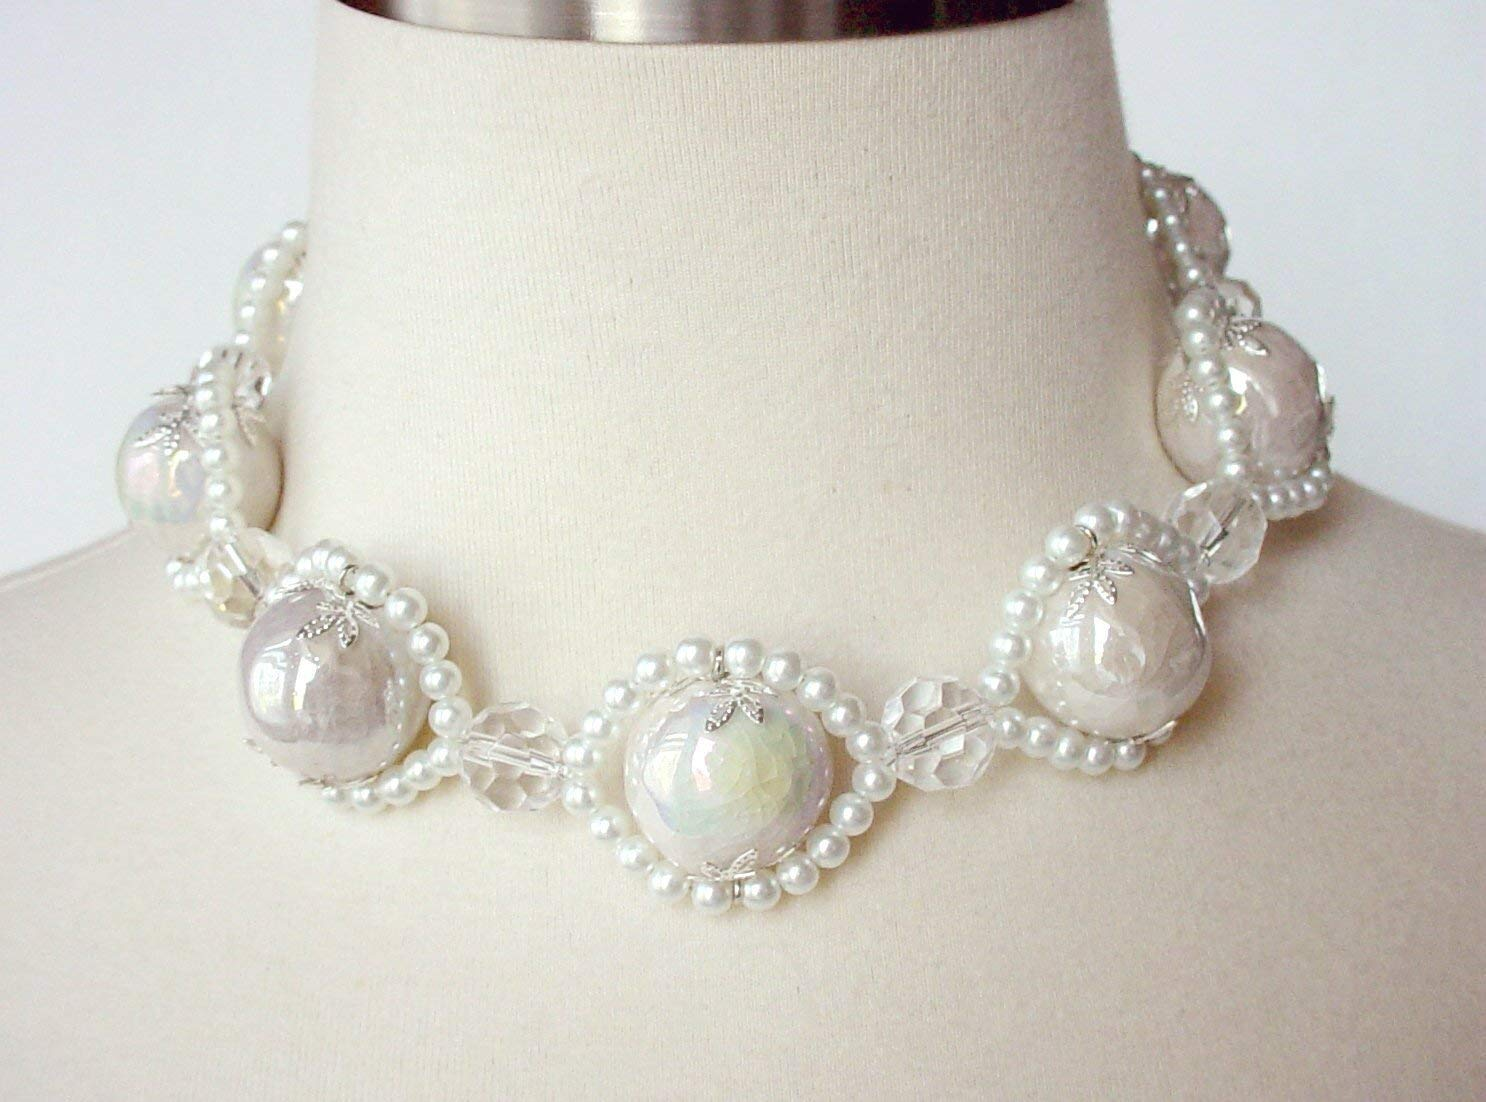 dd398dc53 Get Quotations · White Chunky Choker Necklace, Large Bead Chunky Necklace,  Bridal Statement Necklace, White Pearl